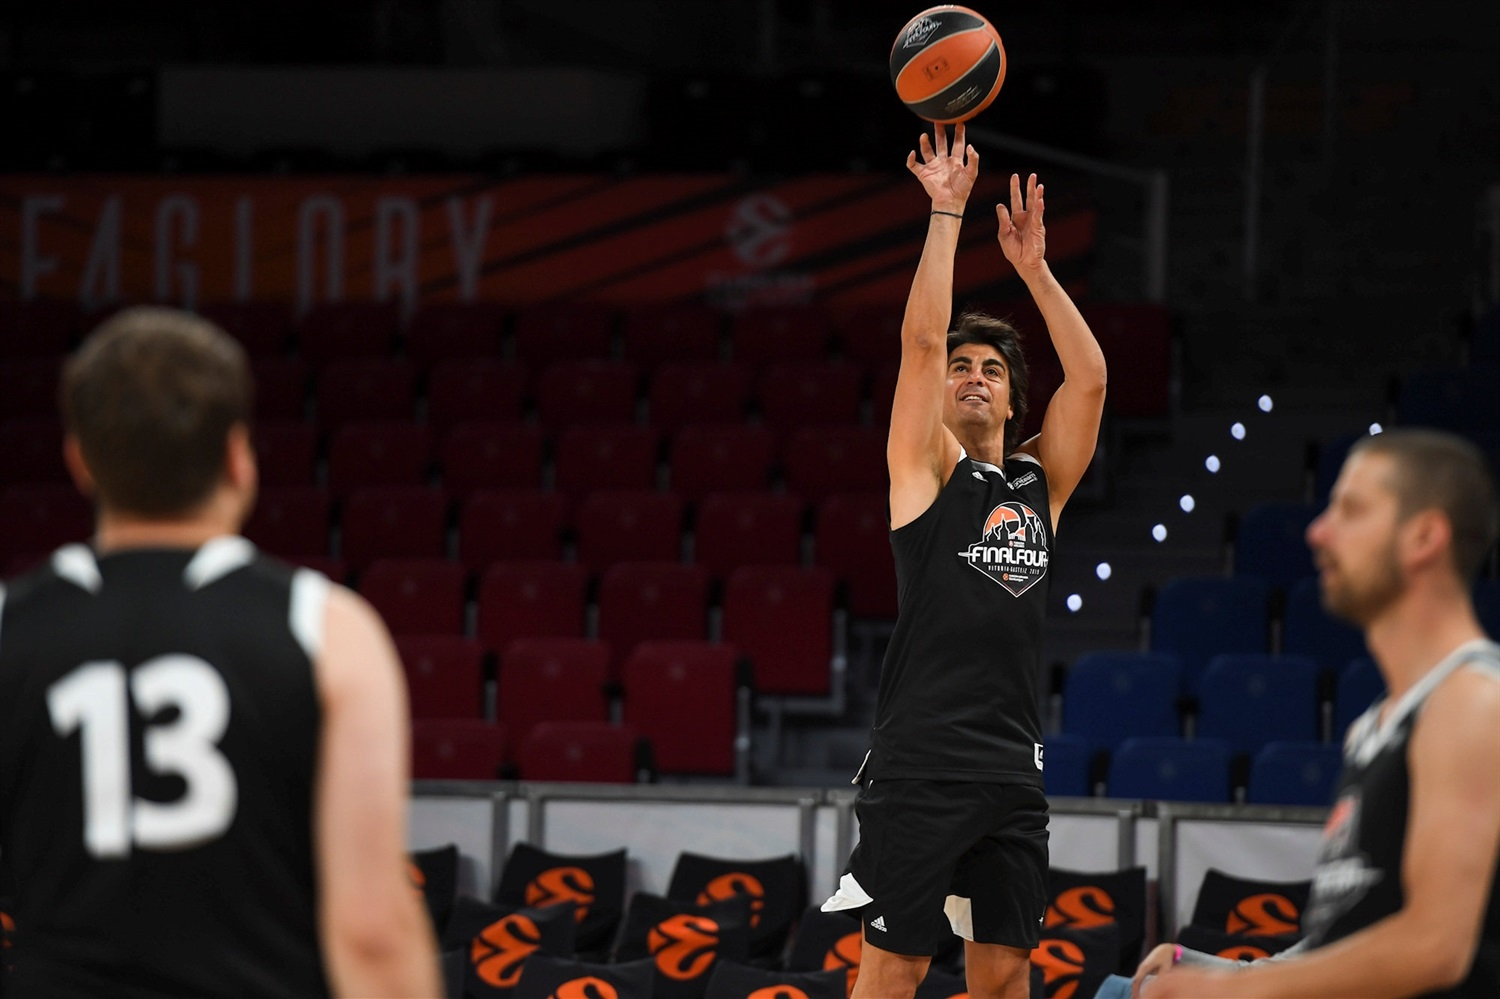 Ibrahim Kutluay - Media Game - Final Four Vitoria-Gasteiz 2019 - EB18